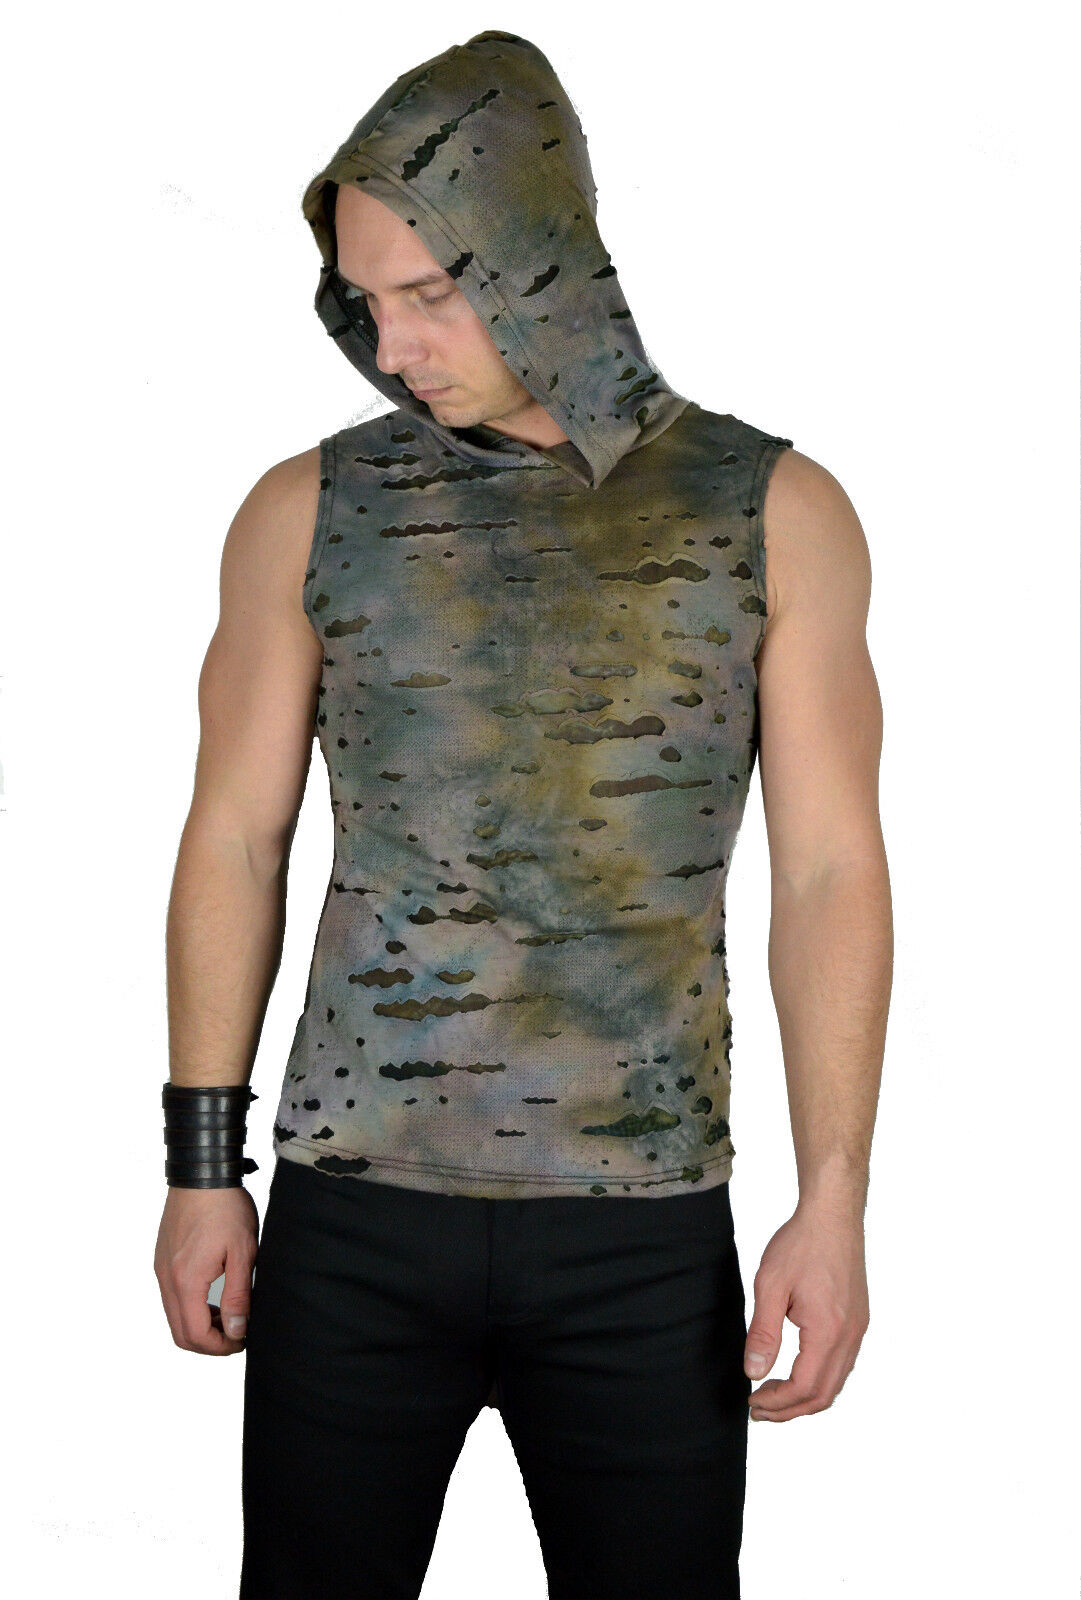 SHRINE DECAYED GREEN CAMO ROCK GOTHIC CYBER PUNK STEAMPUNK SHIRT HOODIE ZOMBIE Activewear